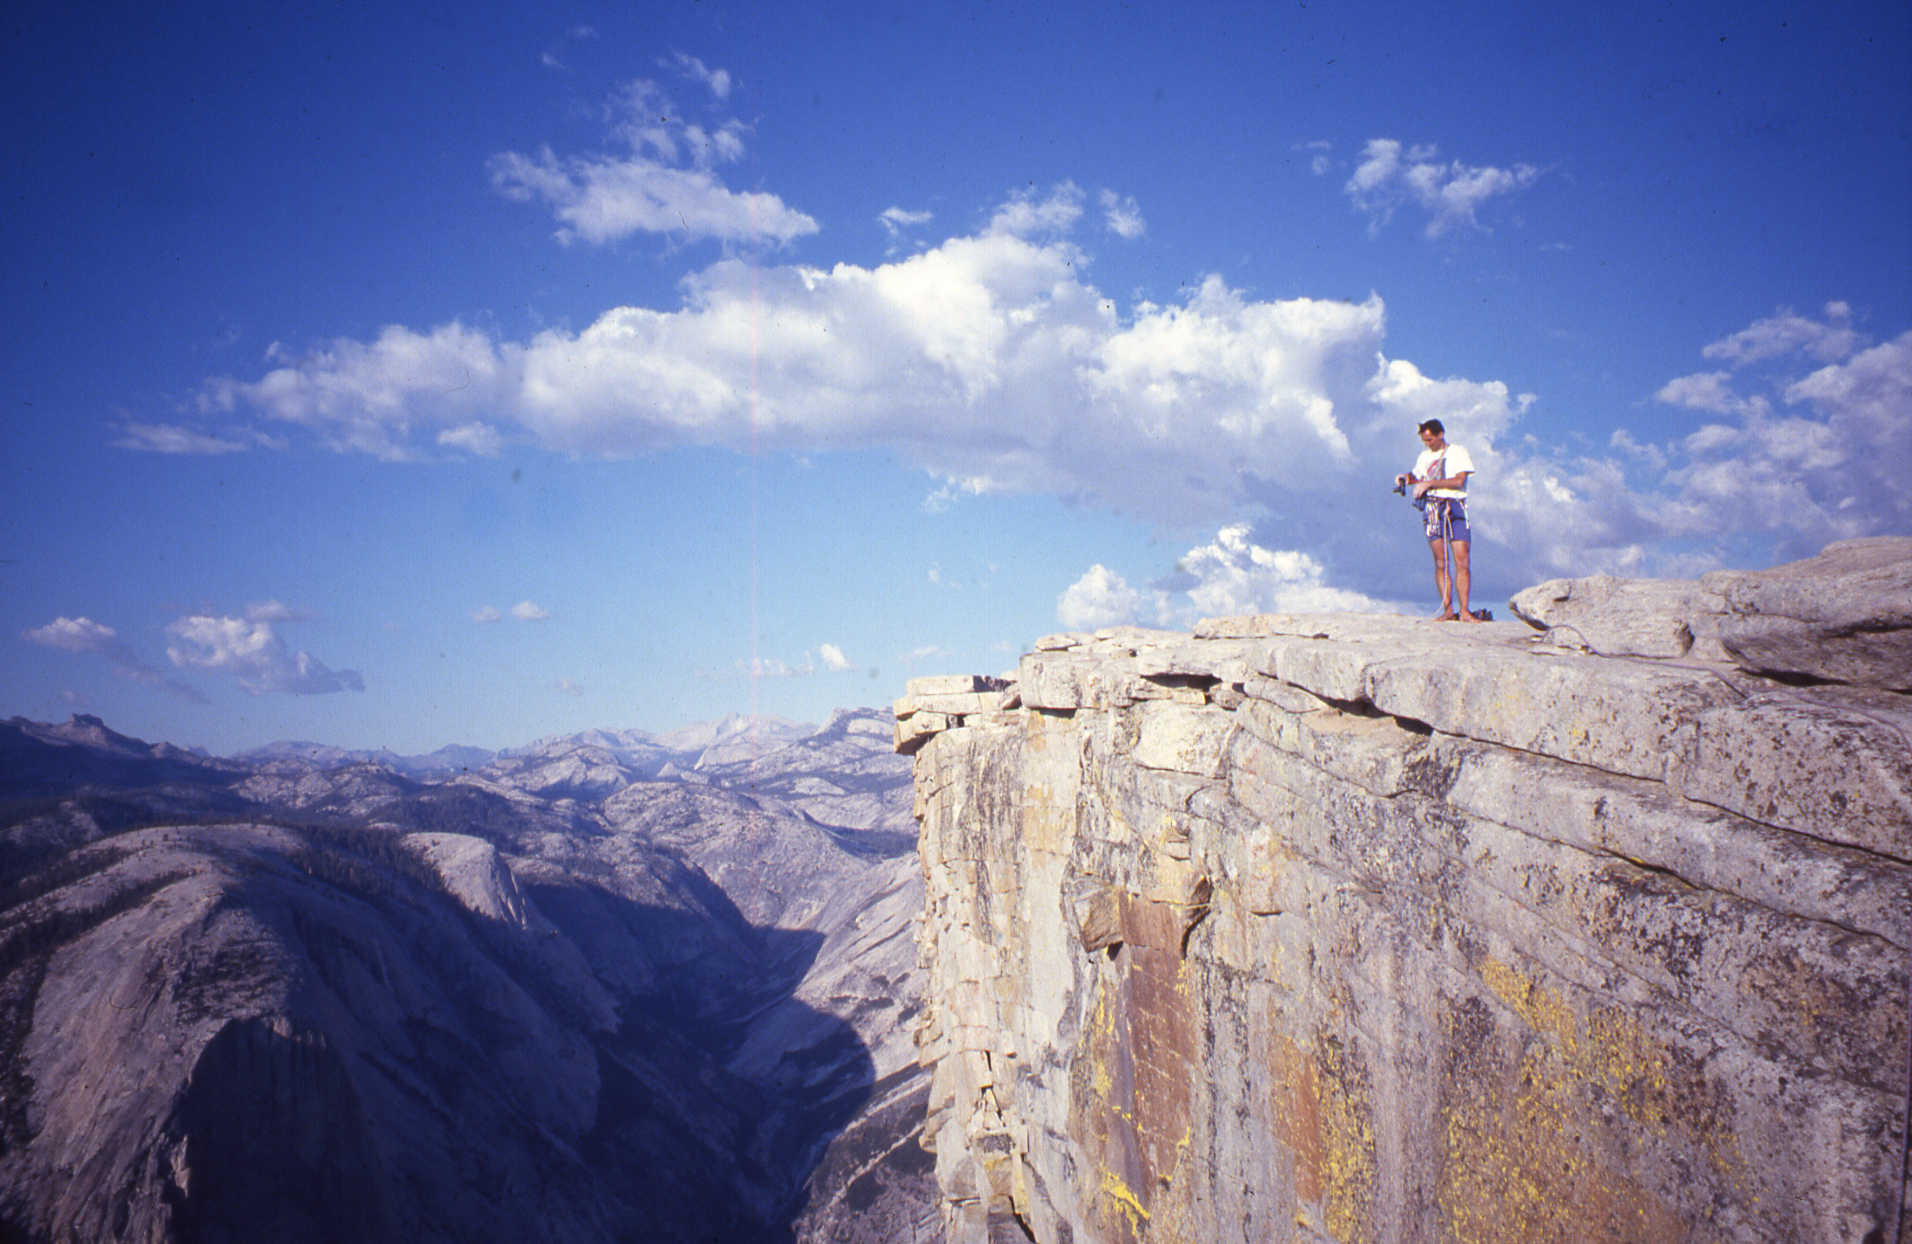 Athol on top of Half Dome after we made a free ascent of the northwest face, Regular Route, 1994.